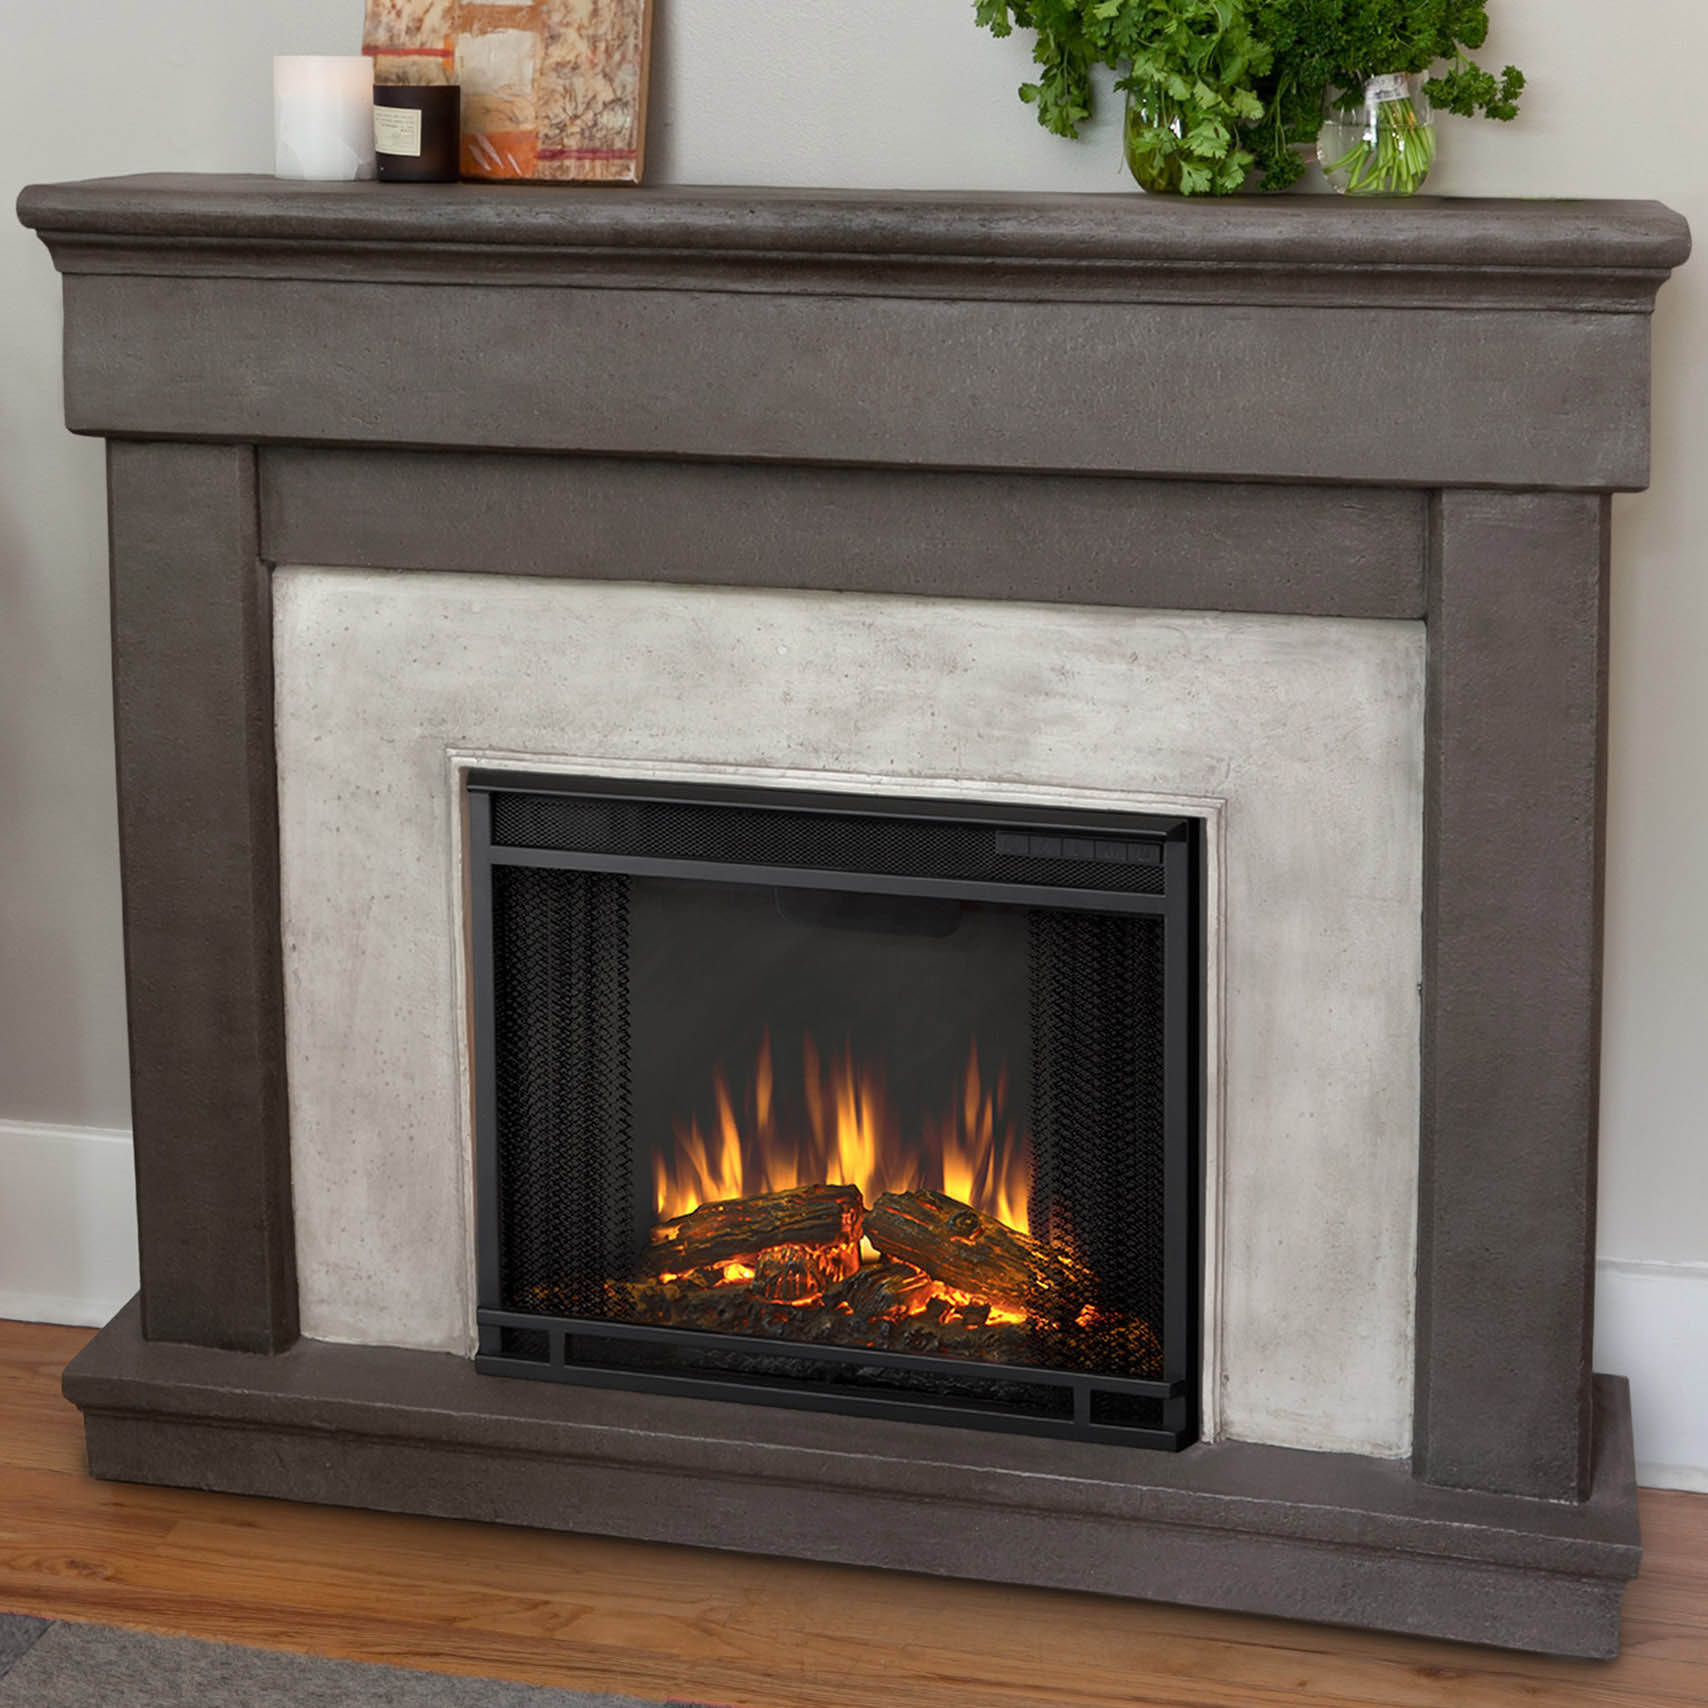 Best ideas about Real Flame Electric Fireplace . Save or Pin Real Flame Cast Mantel Cascade Electric Fireplace Now.